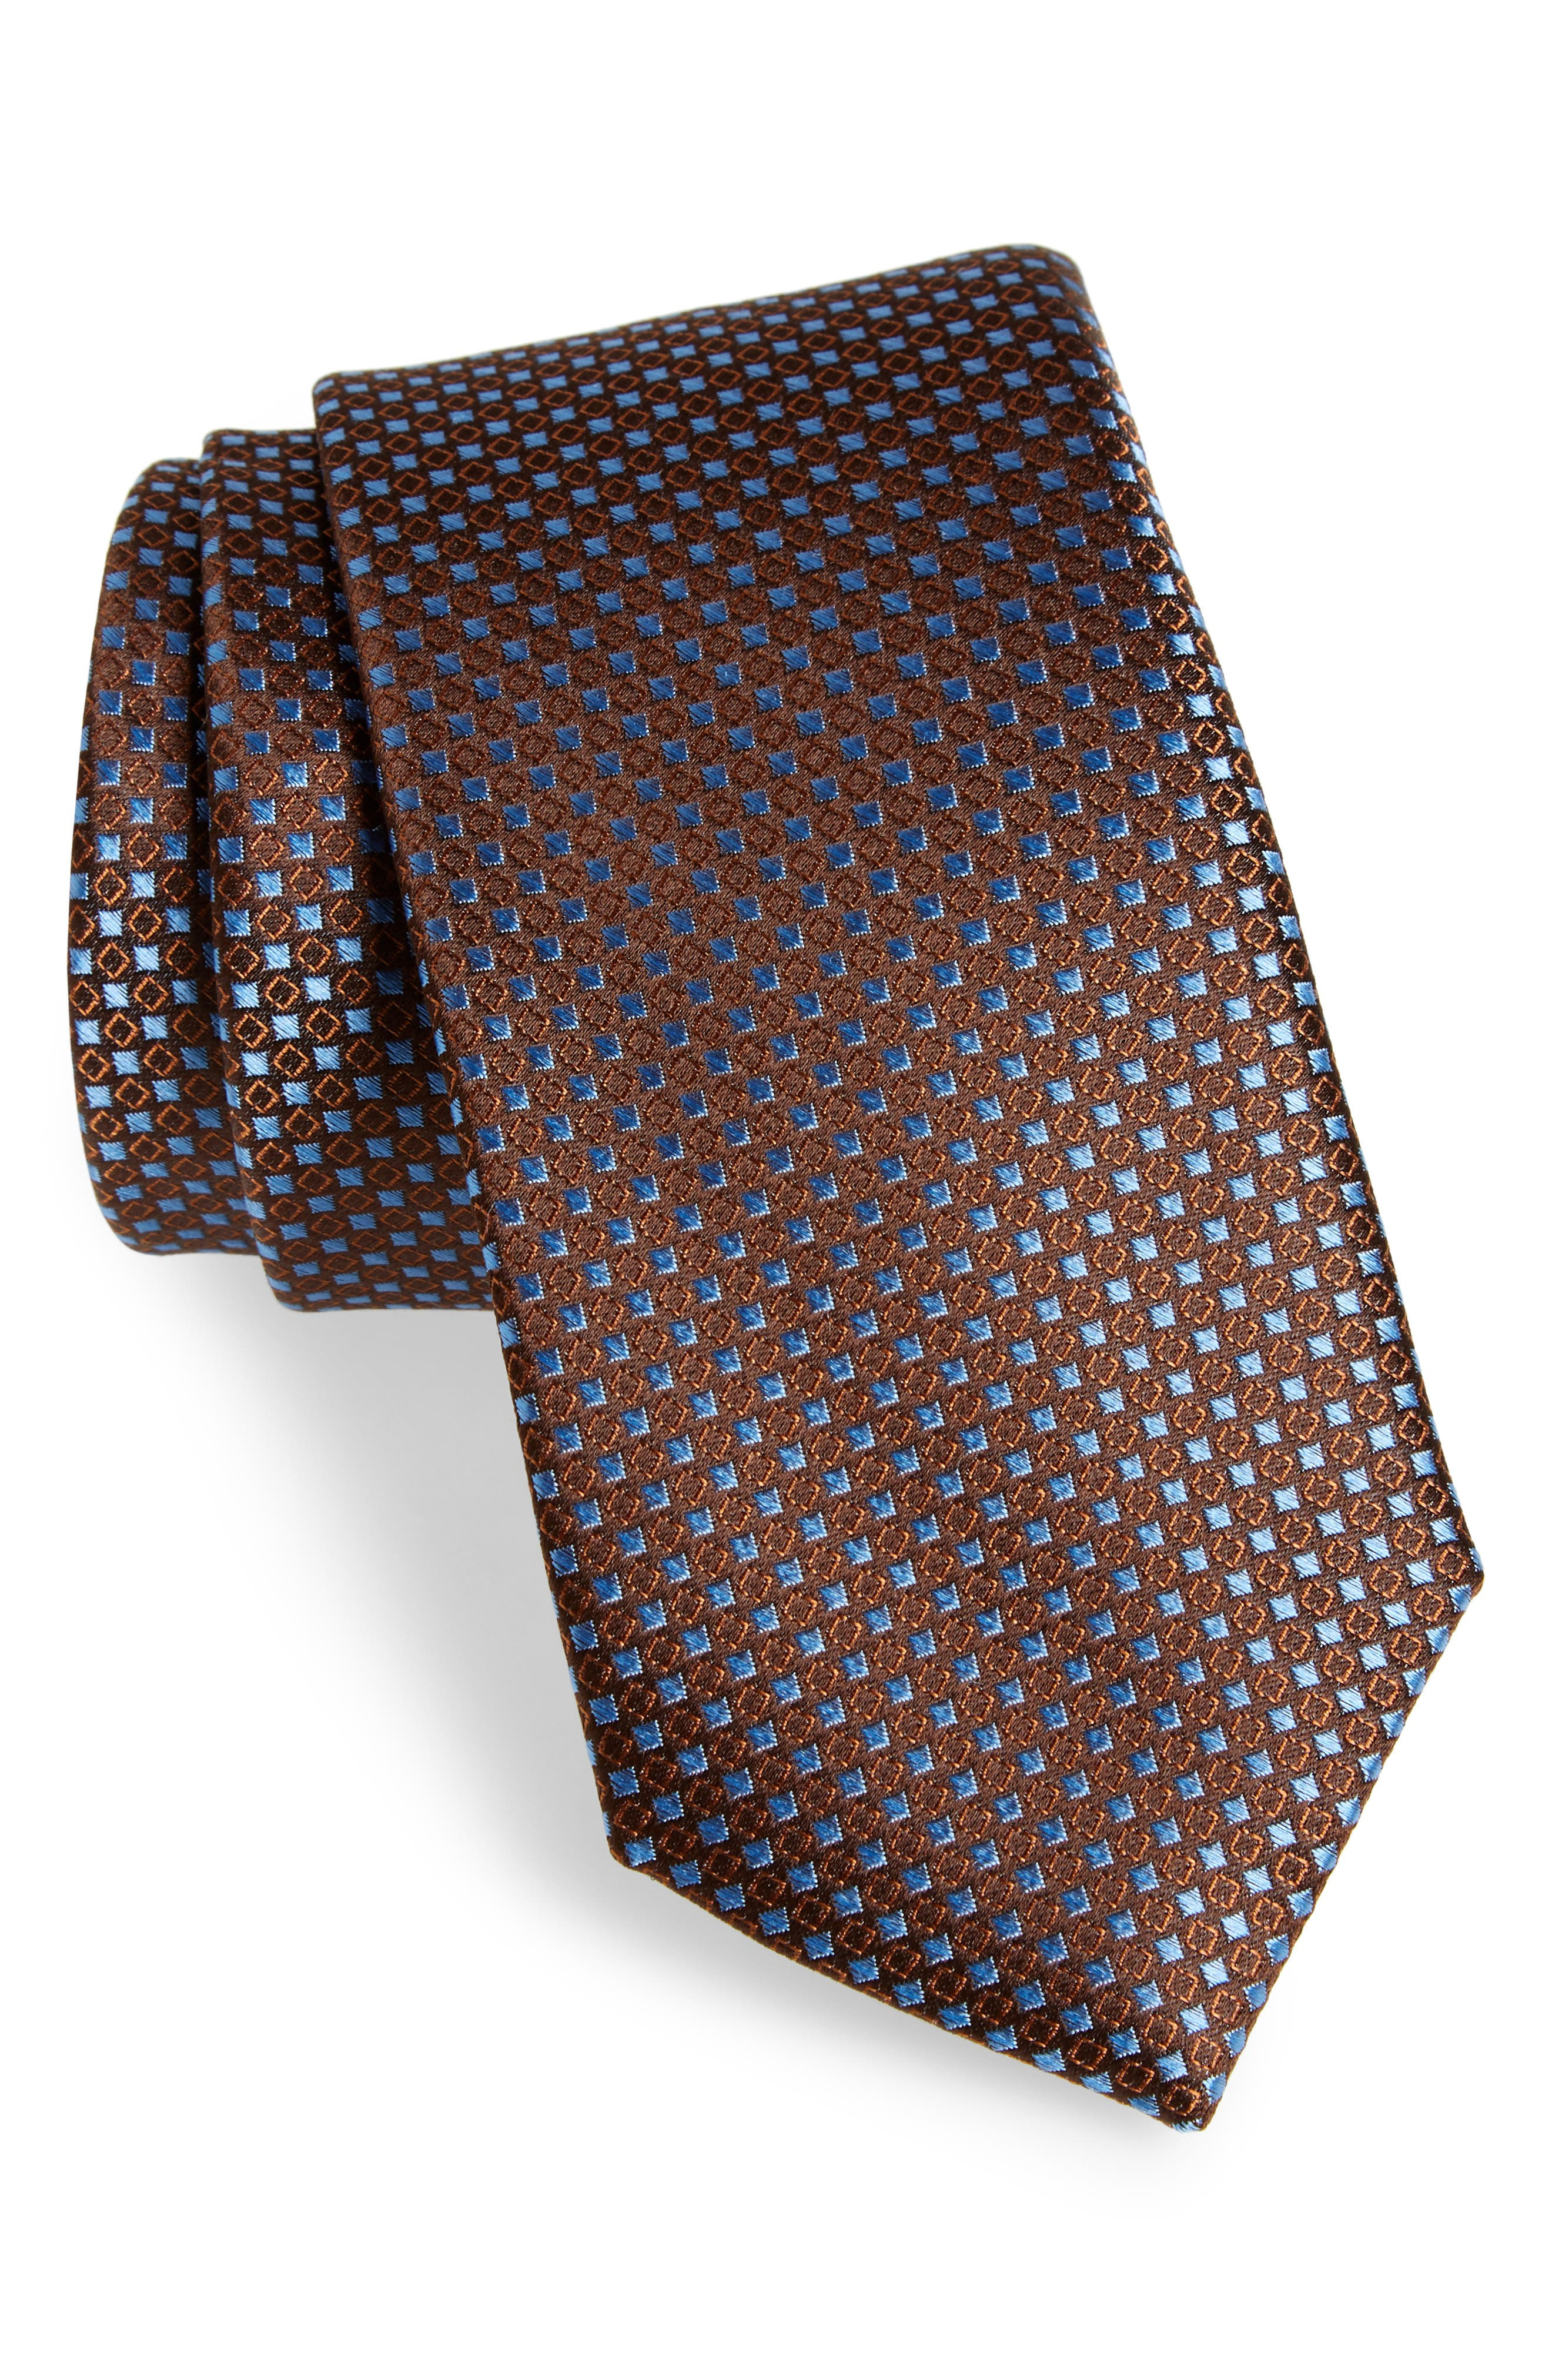 Chad Microdot Silk Tie,                         Main,                         color, Brown